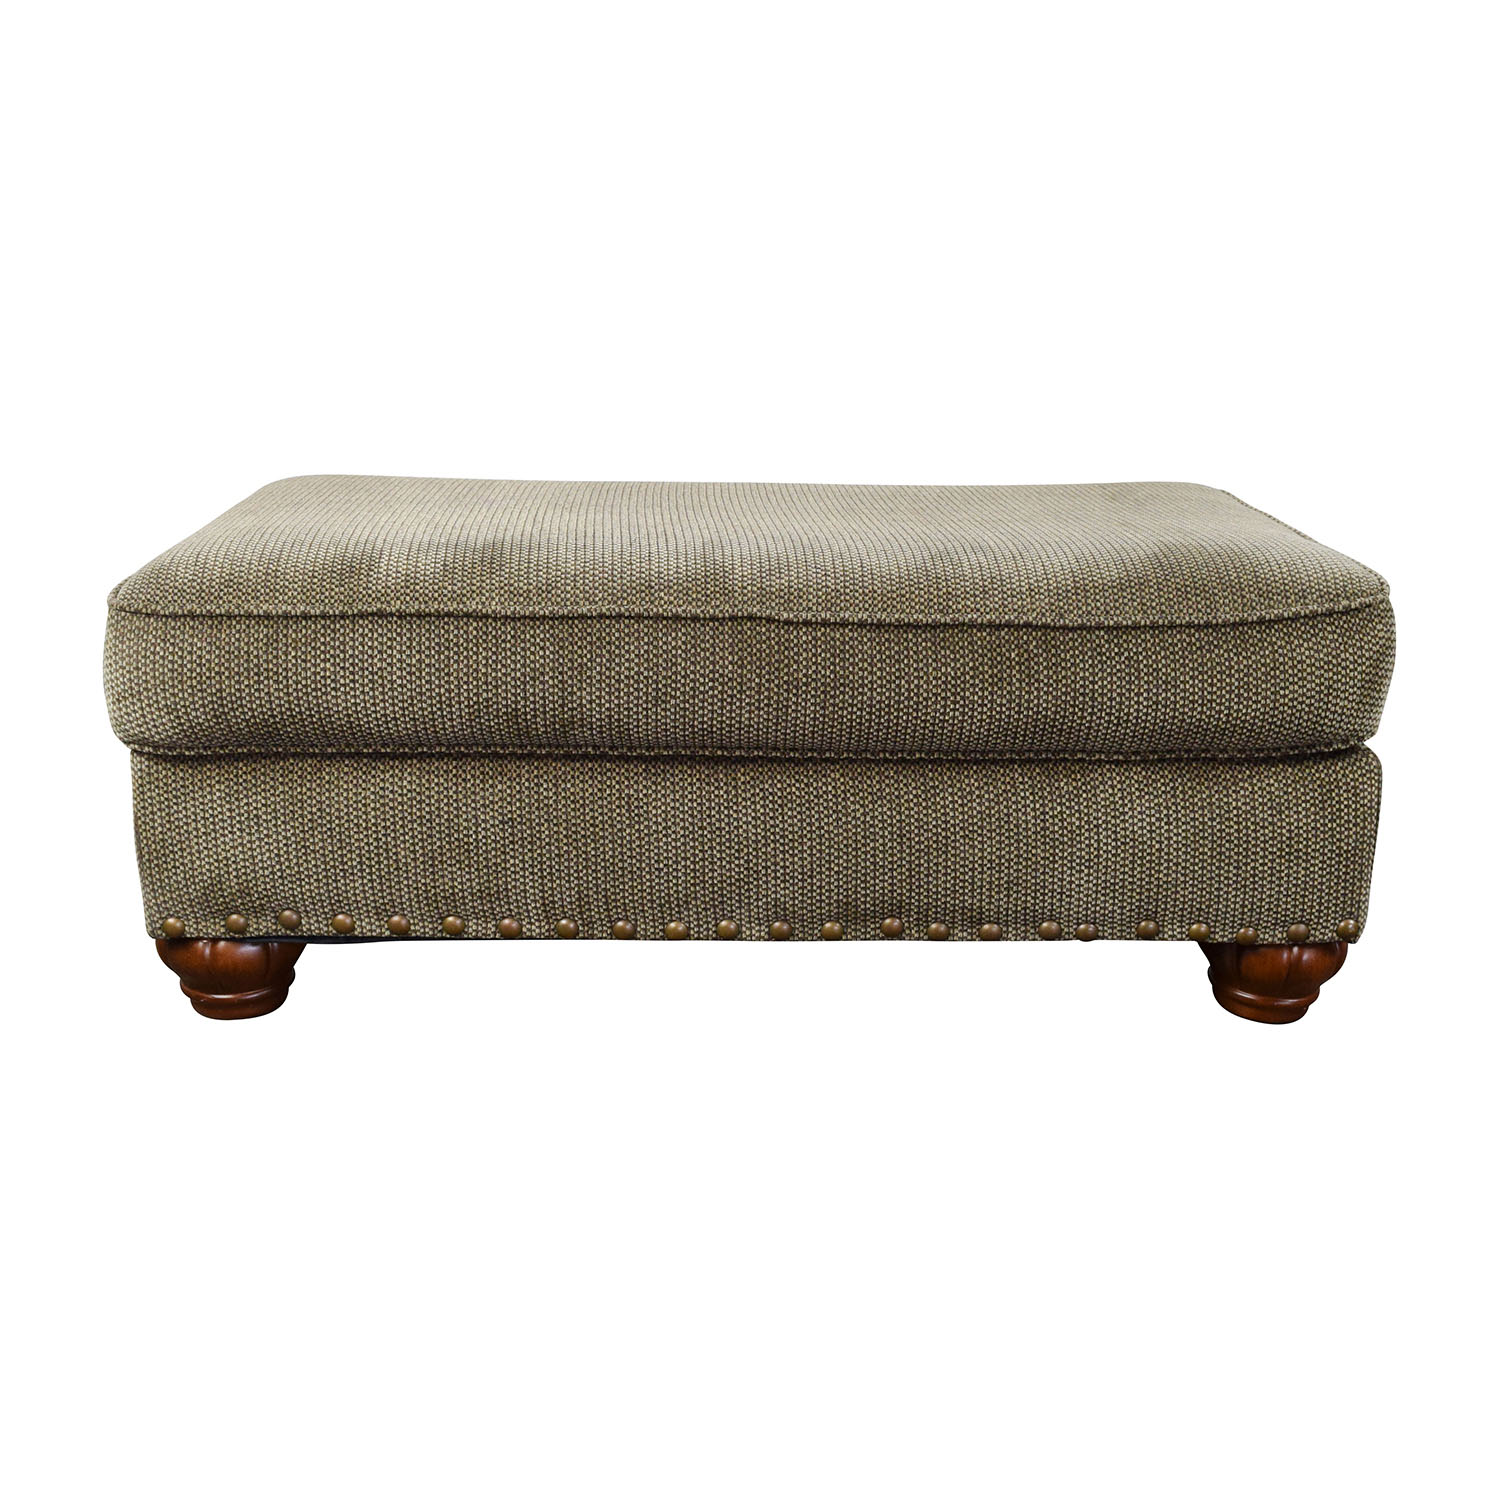 Barklay Barklay Brown Ottoman price